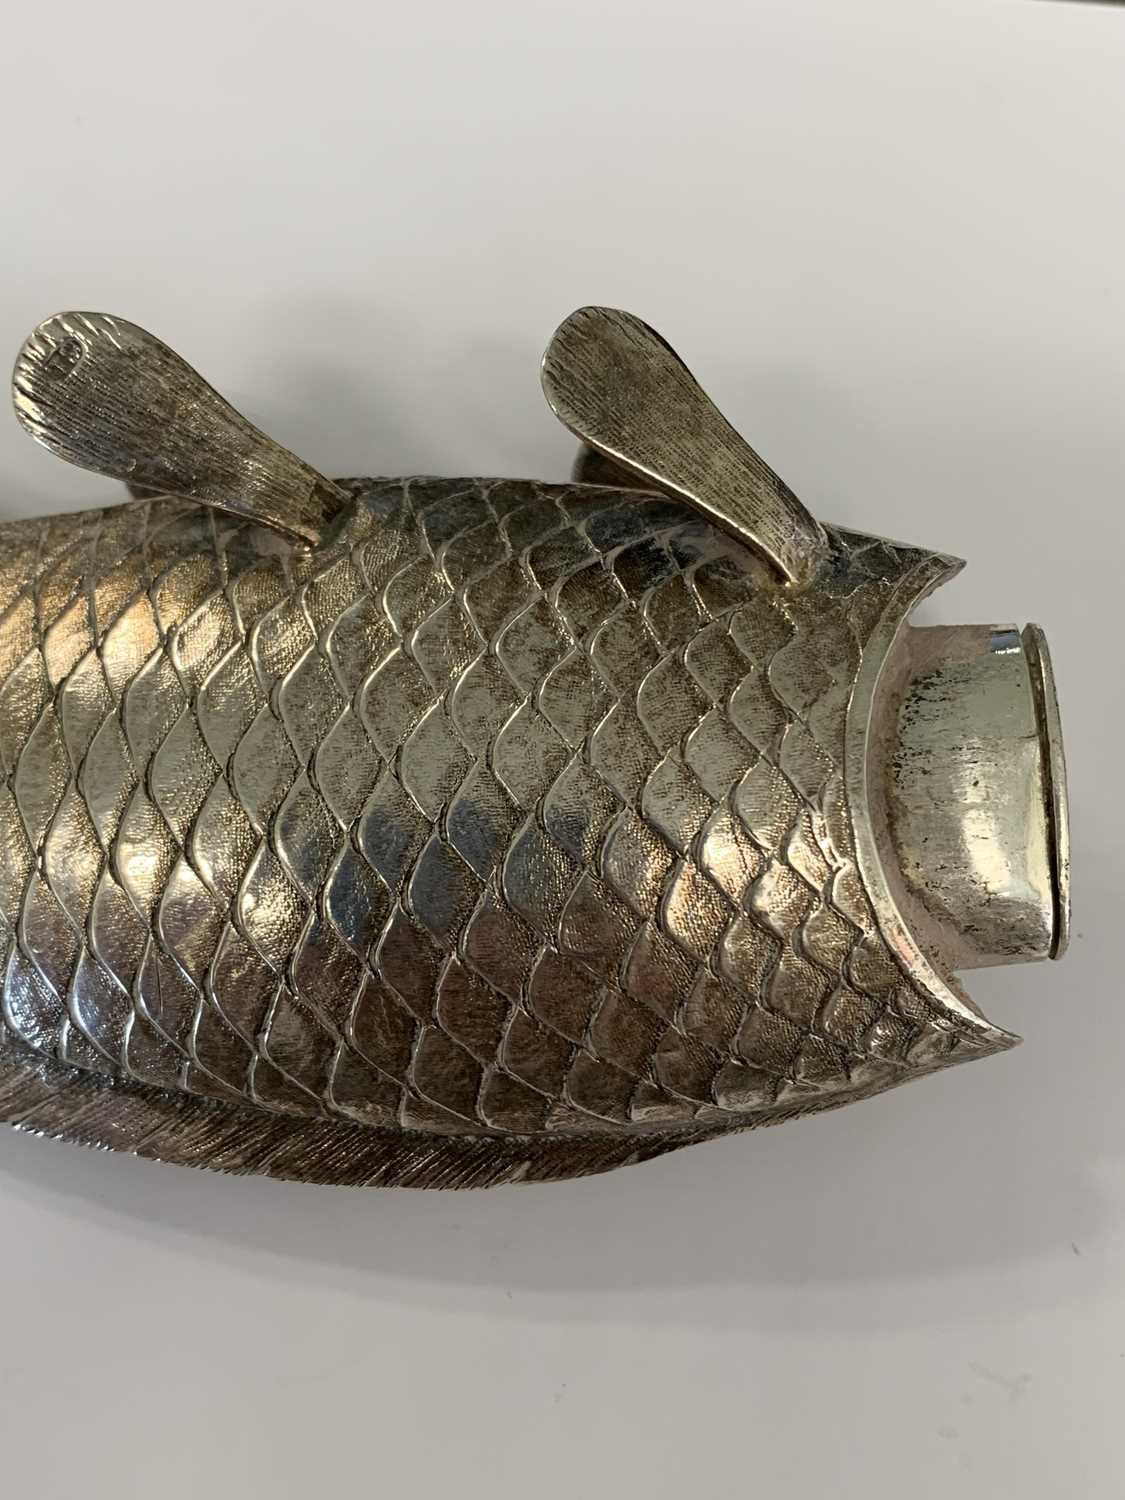 A 19th century Austrian silver novelty pounce pot in the form of a fish - Image 4 of 8